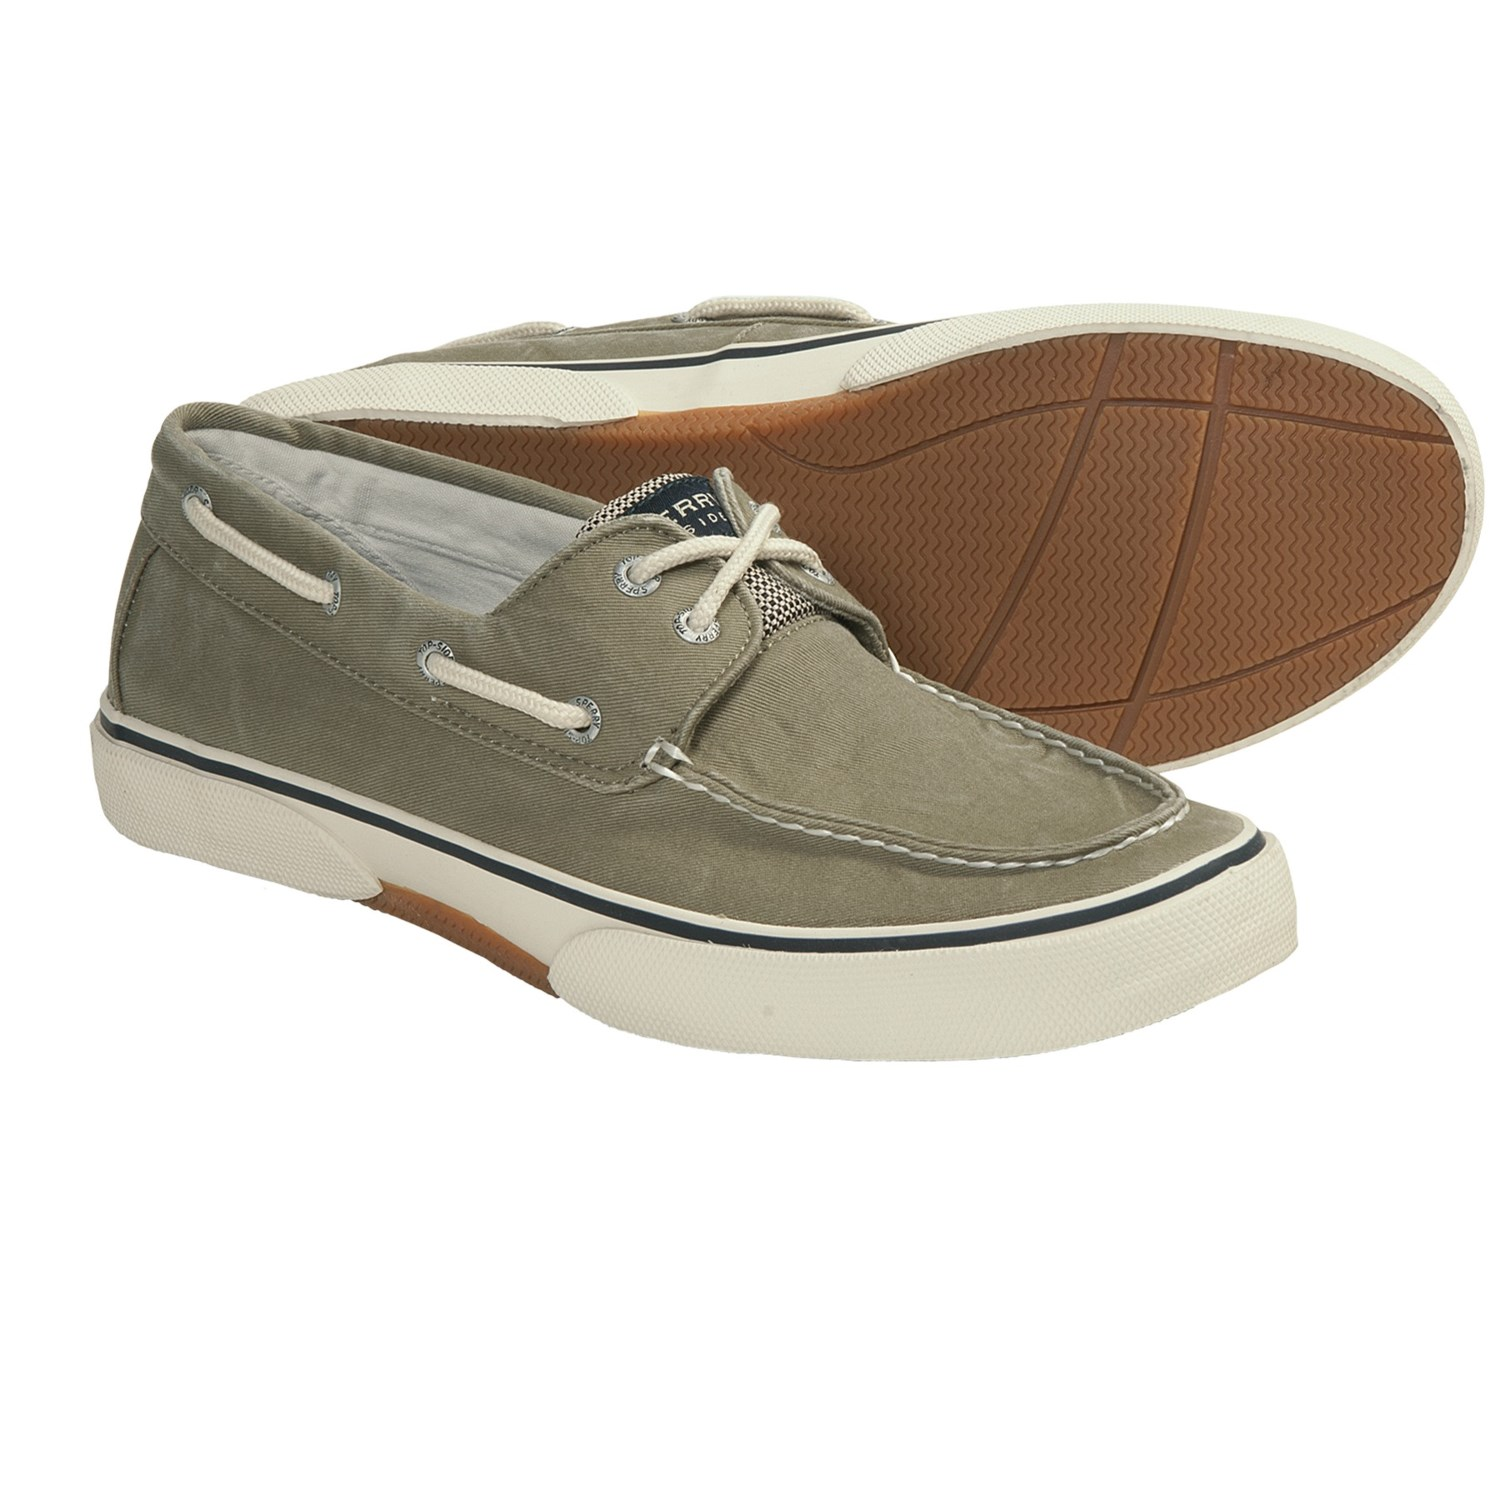 sperry top sider halyard boat shoes for 5840m